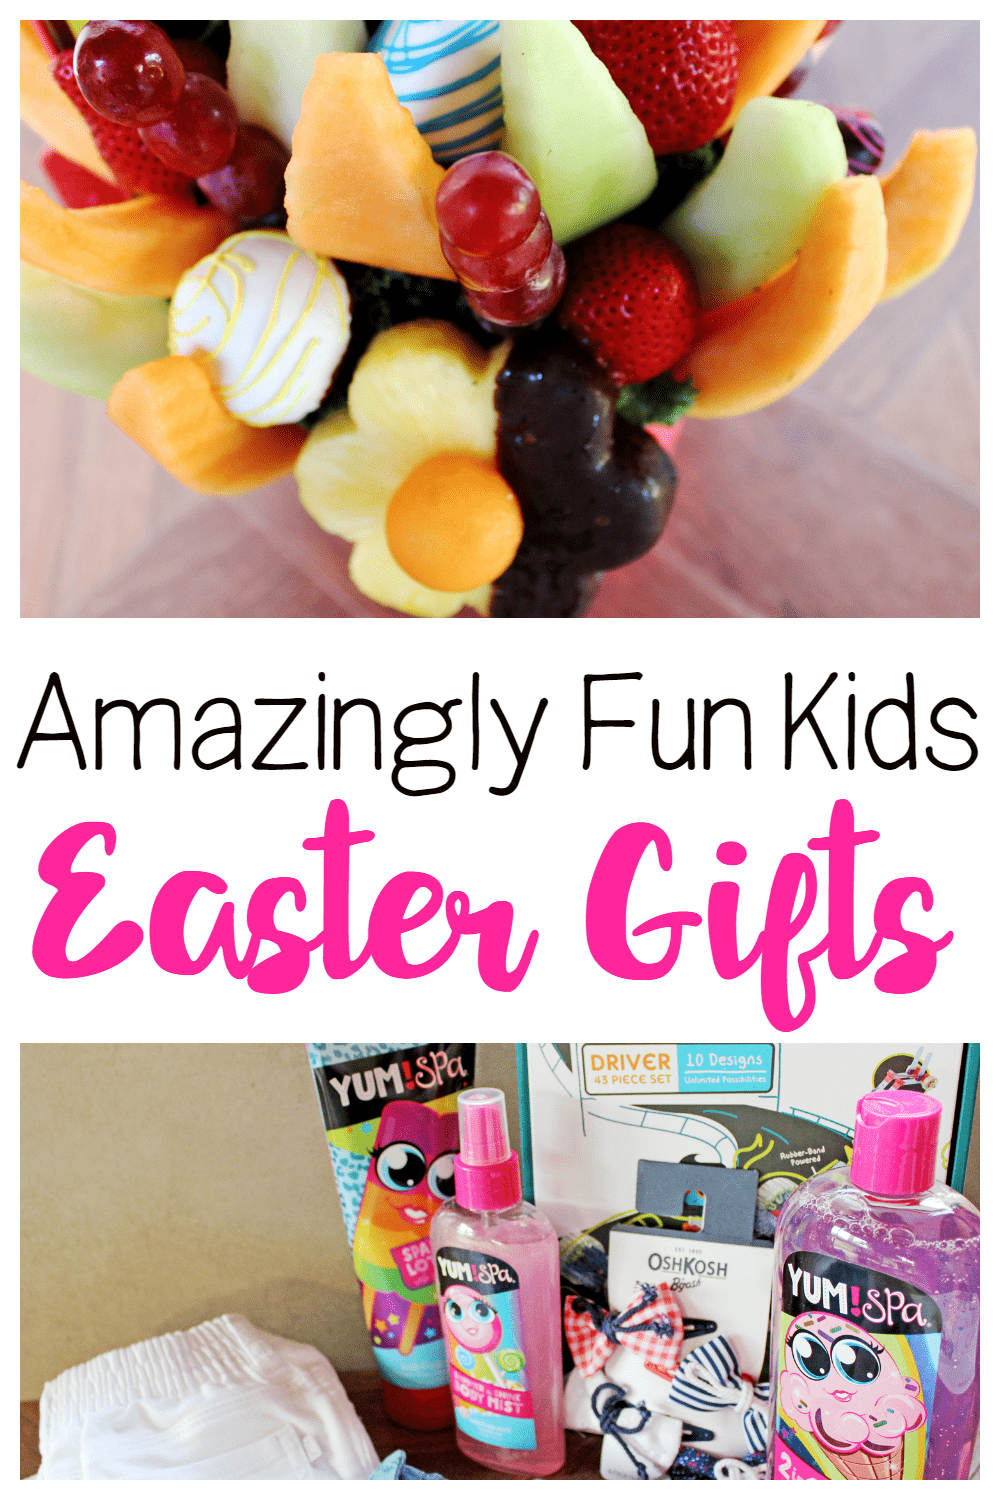 Amazingly Fun Kids Easter Gifts | Have a fun Easter with these Unique Spring Gifts